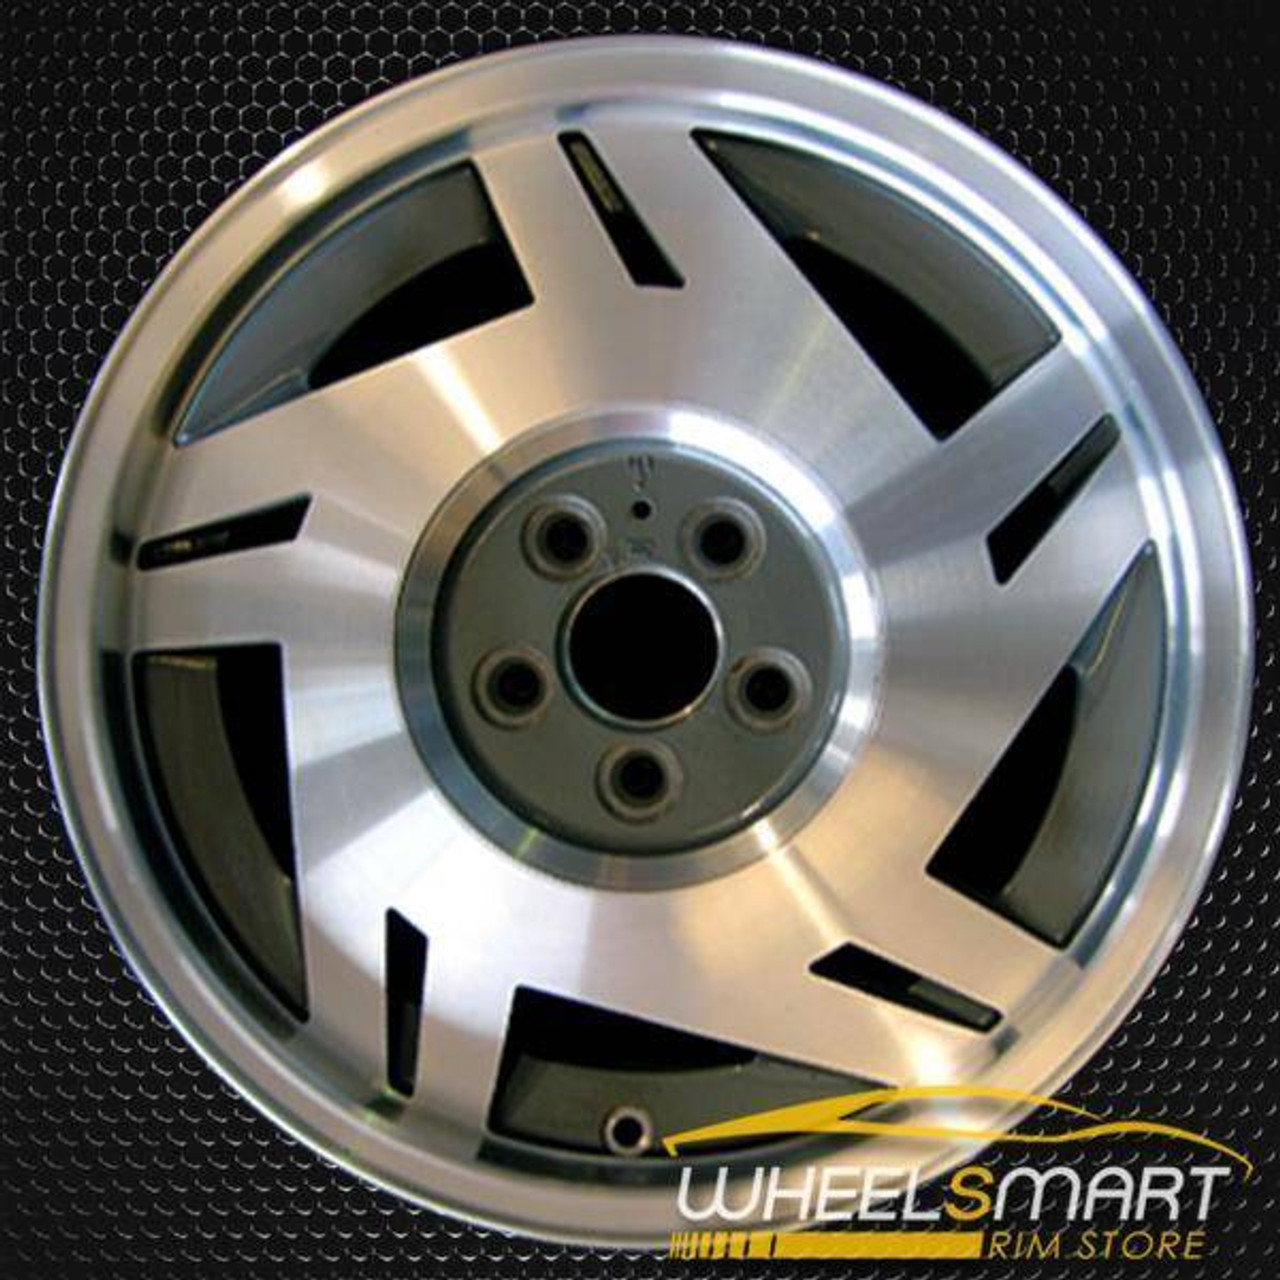 1991 1994 chevy cavalier oem wheels for sale 15 machined rim 5004 15 chevy cavalier oem wheel 1991 1994 machined alloy stock rim 5004